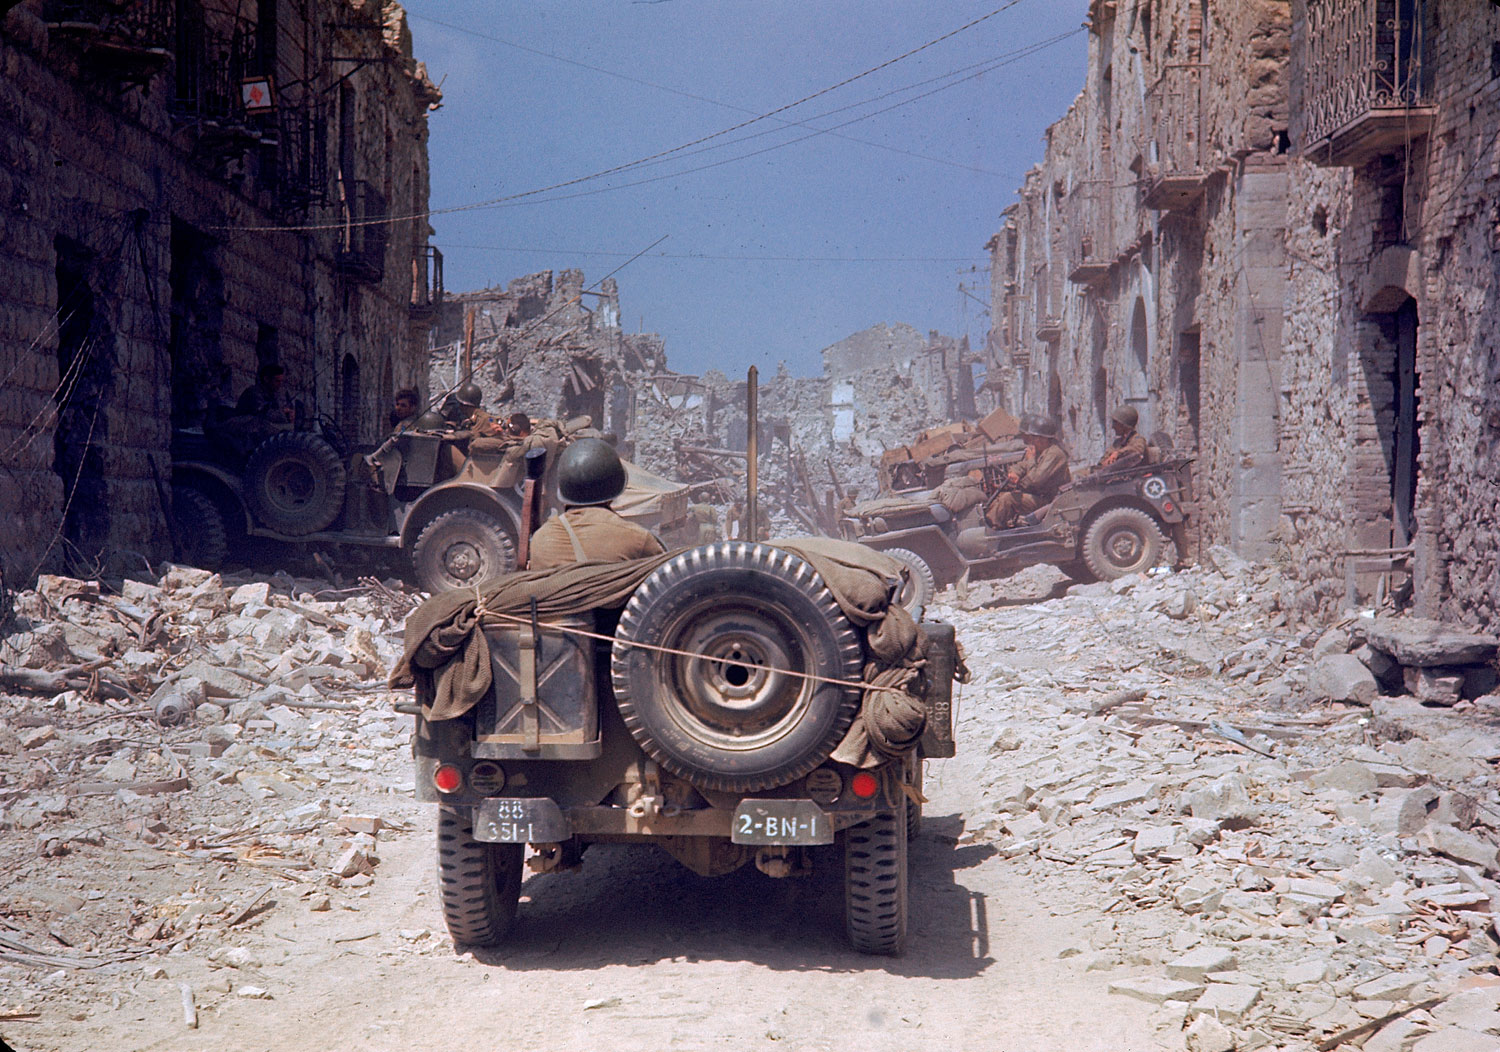 American jeeps travelled through a bombed-out town during the drive towards Rome, World War II.